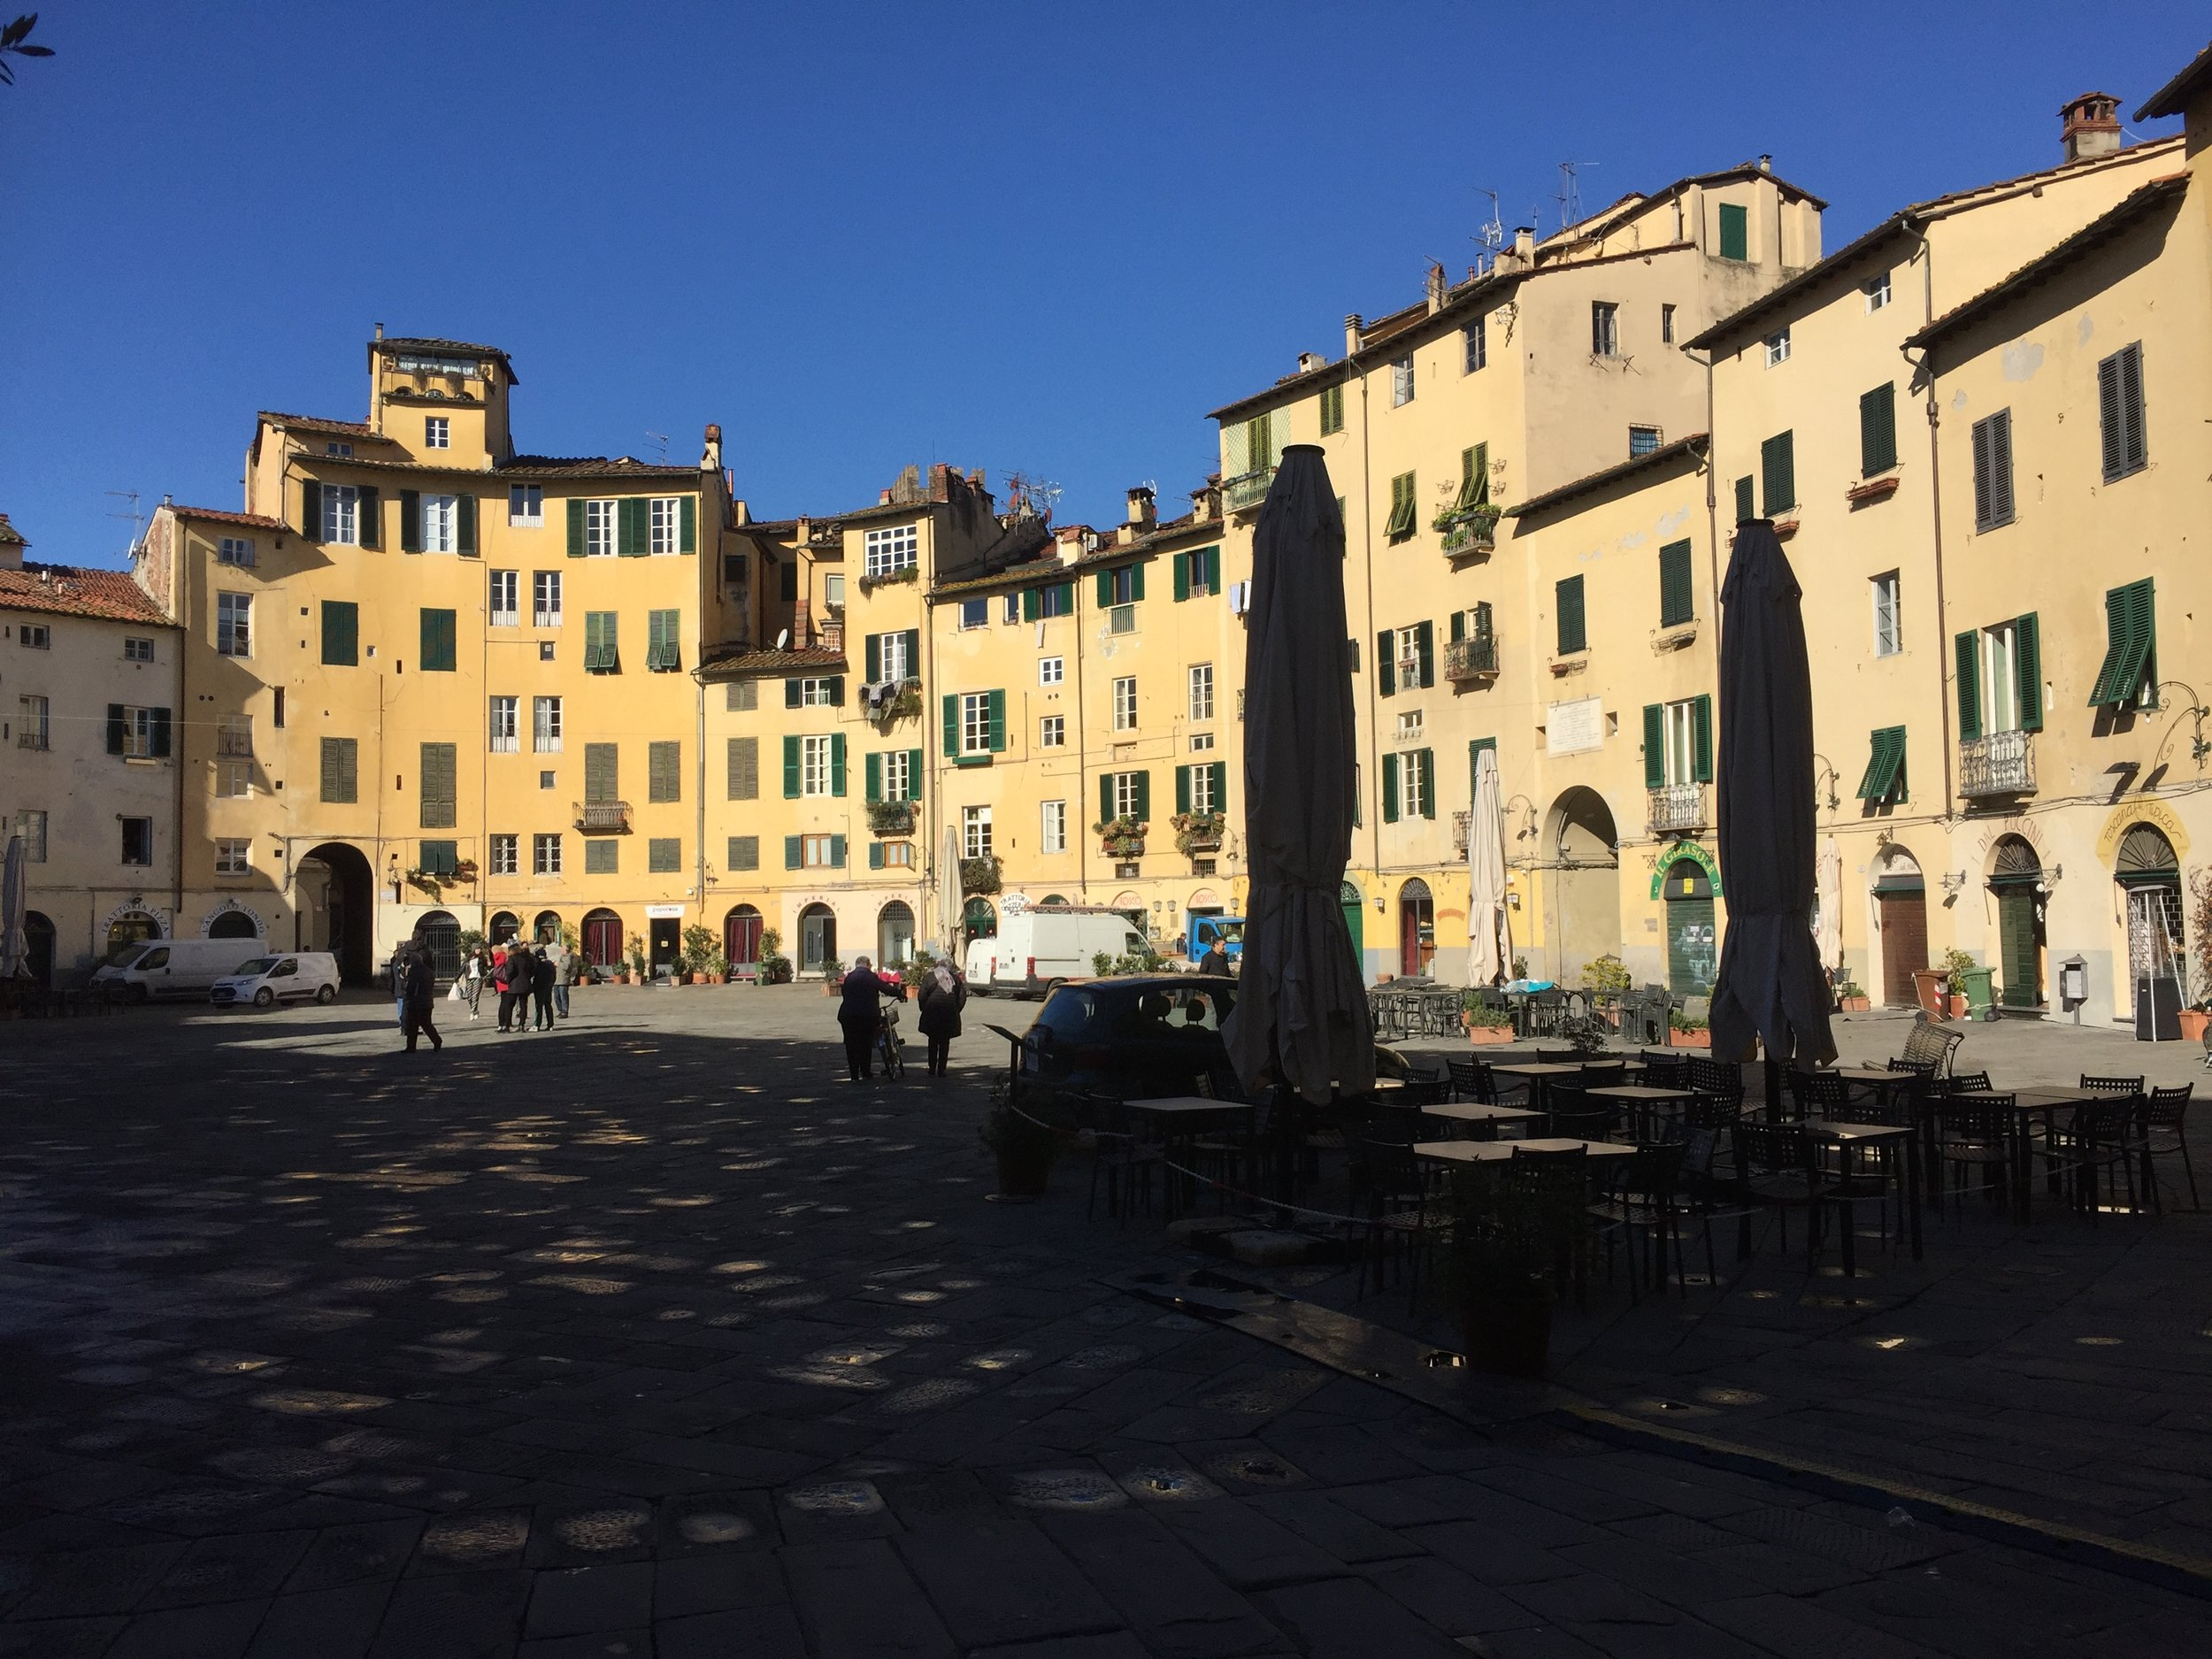 Apartments face the cafes on the Piazza Anfiteatro.